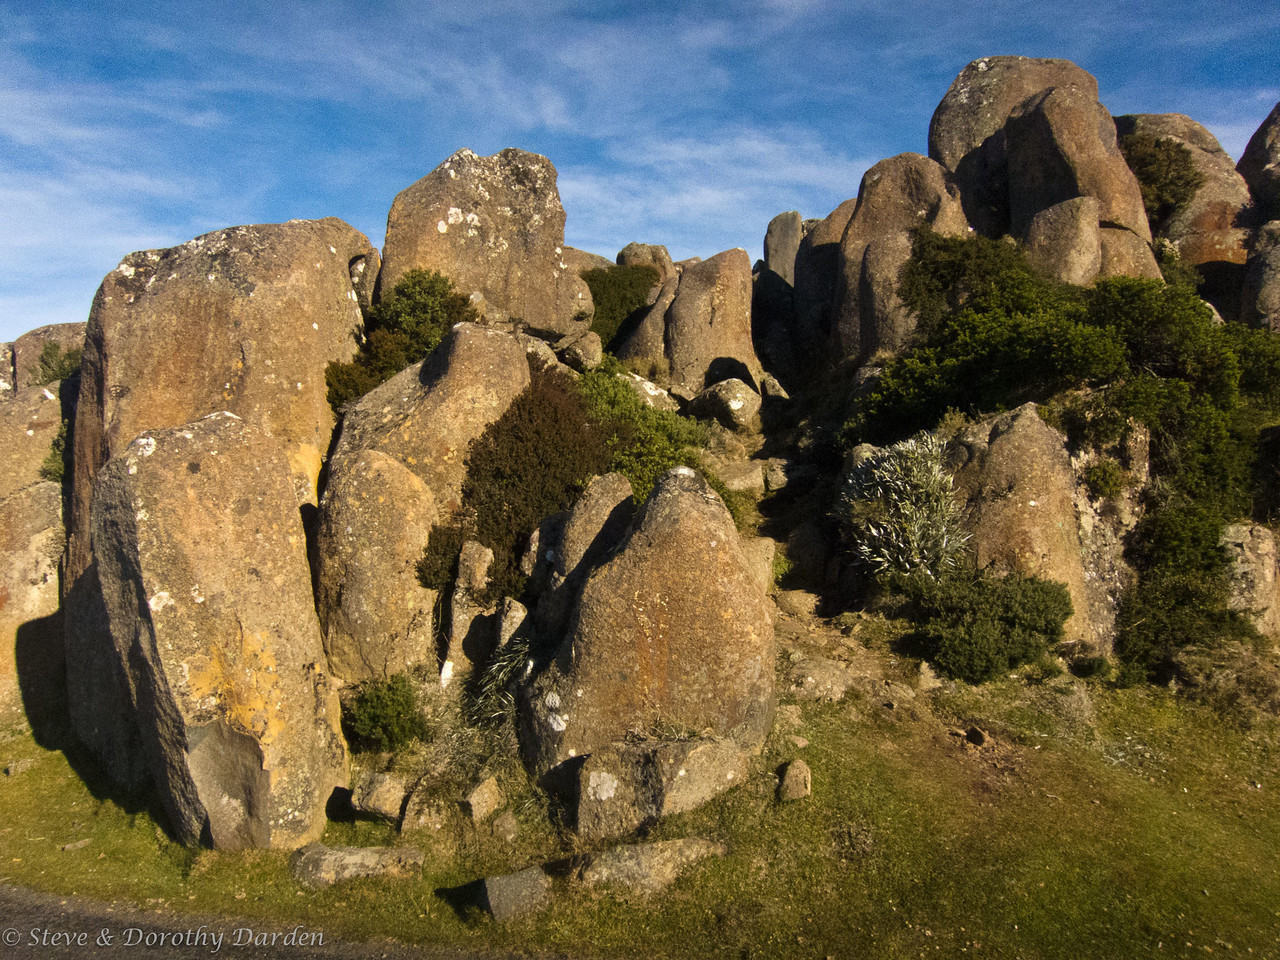 Dolorite rocks at the top of Mt Wellington